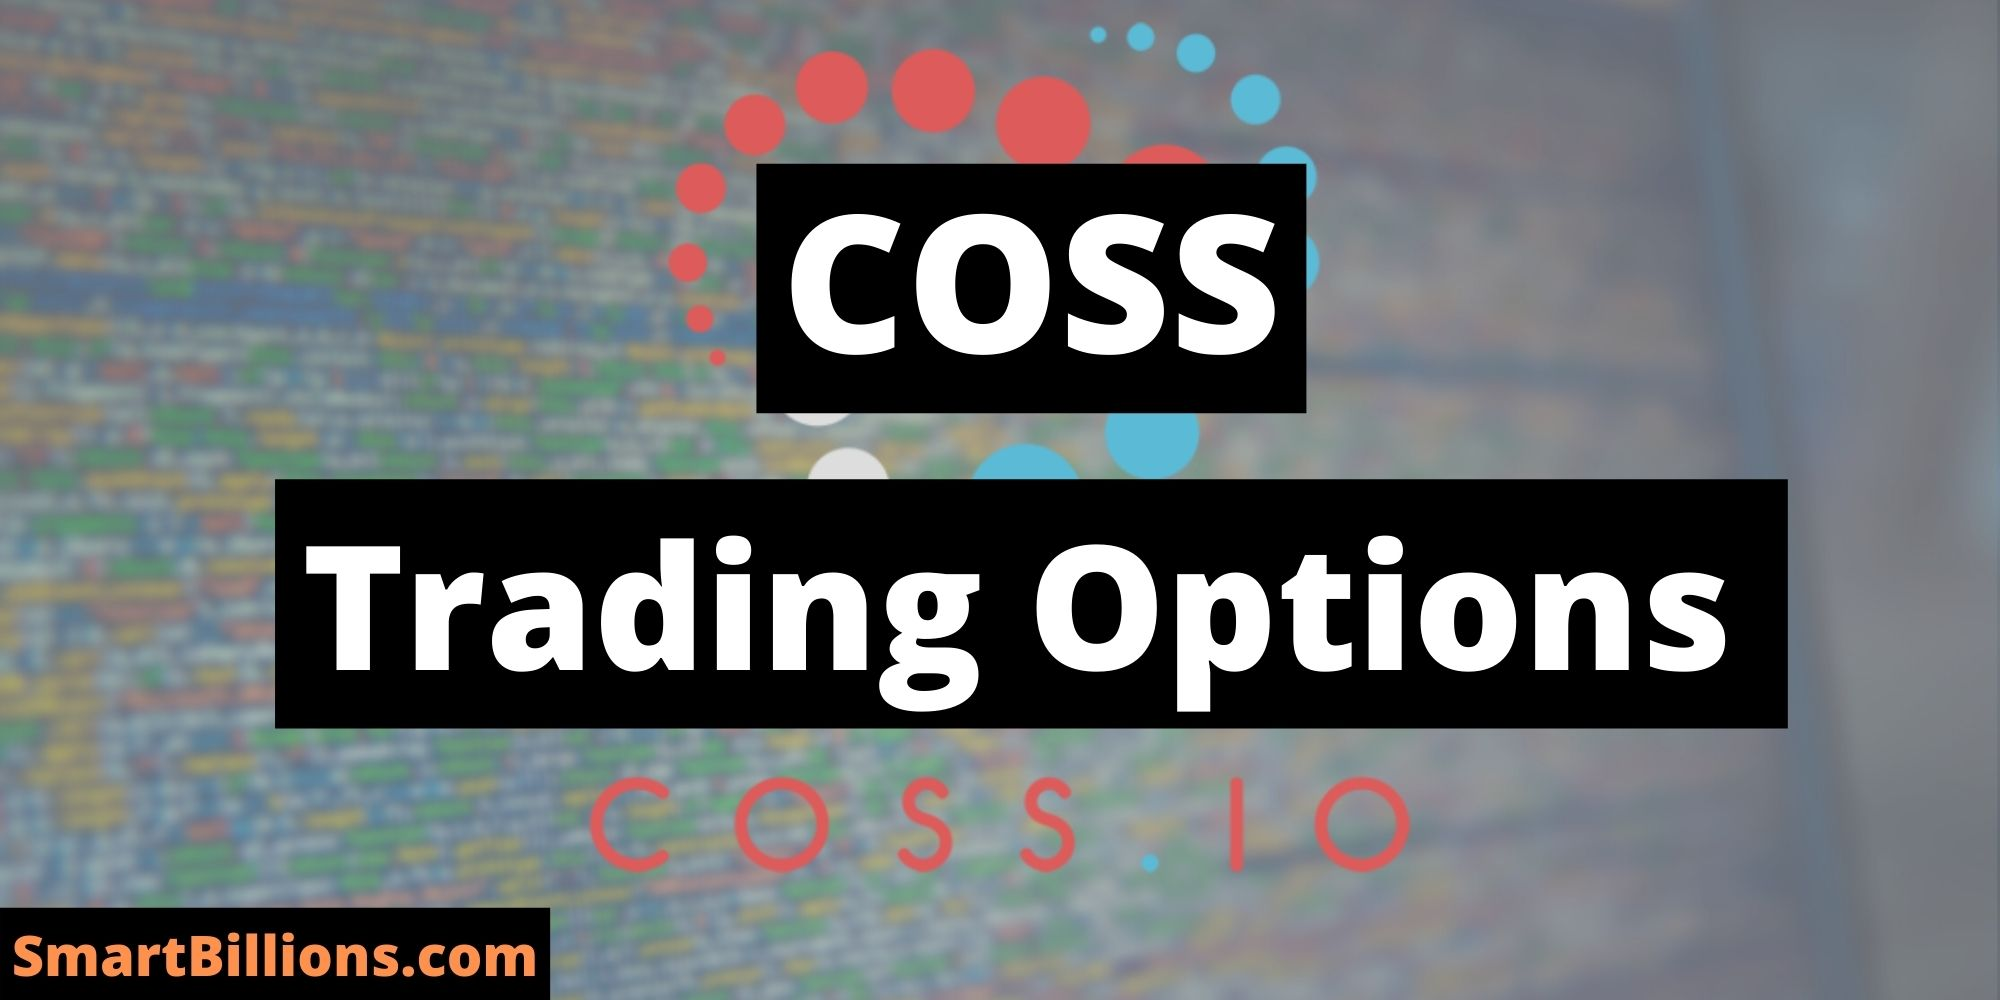 coss trading options